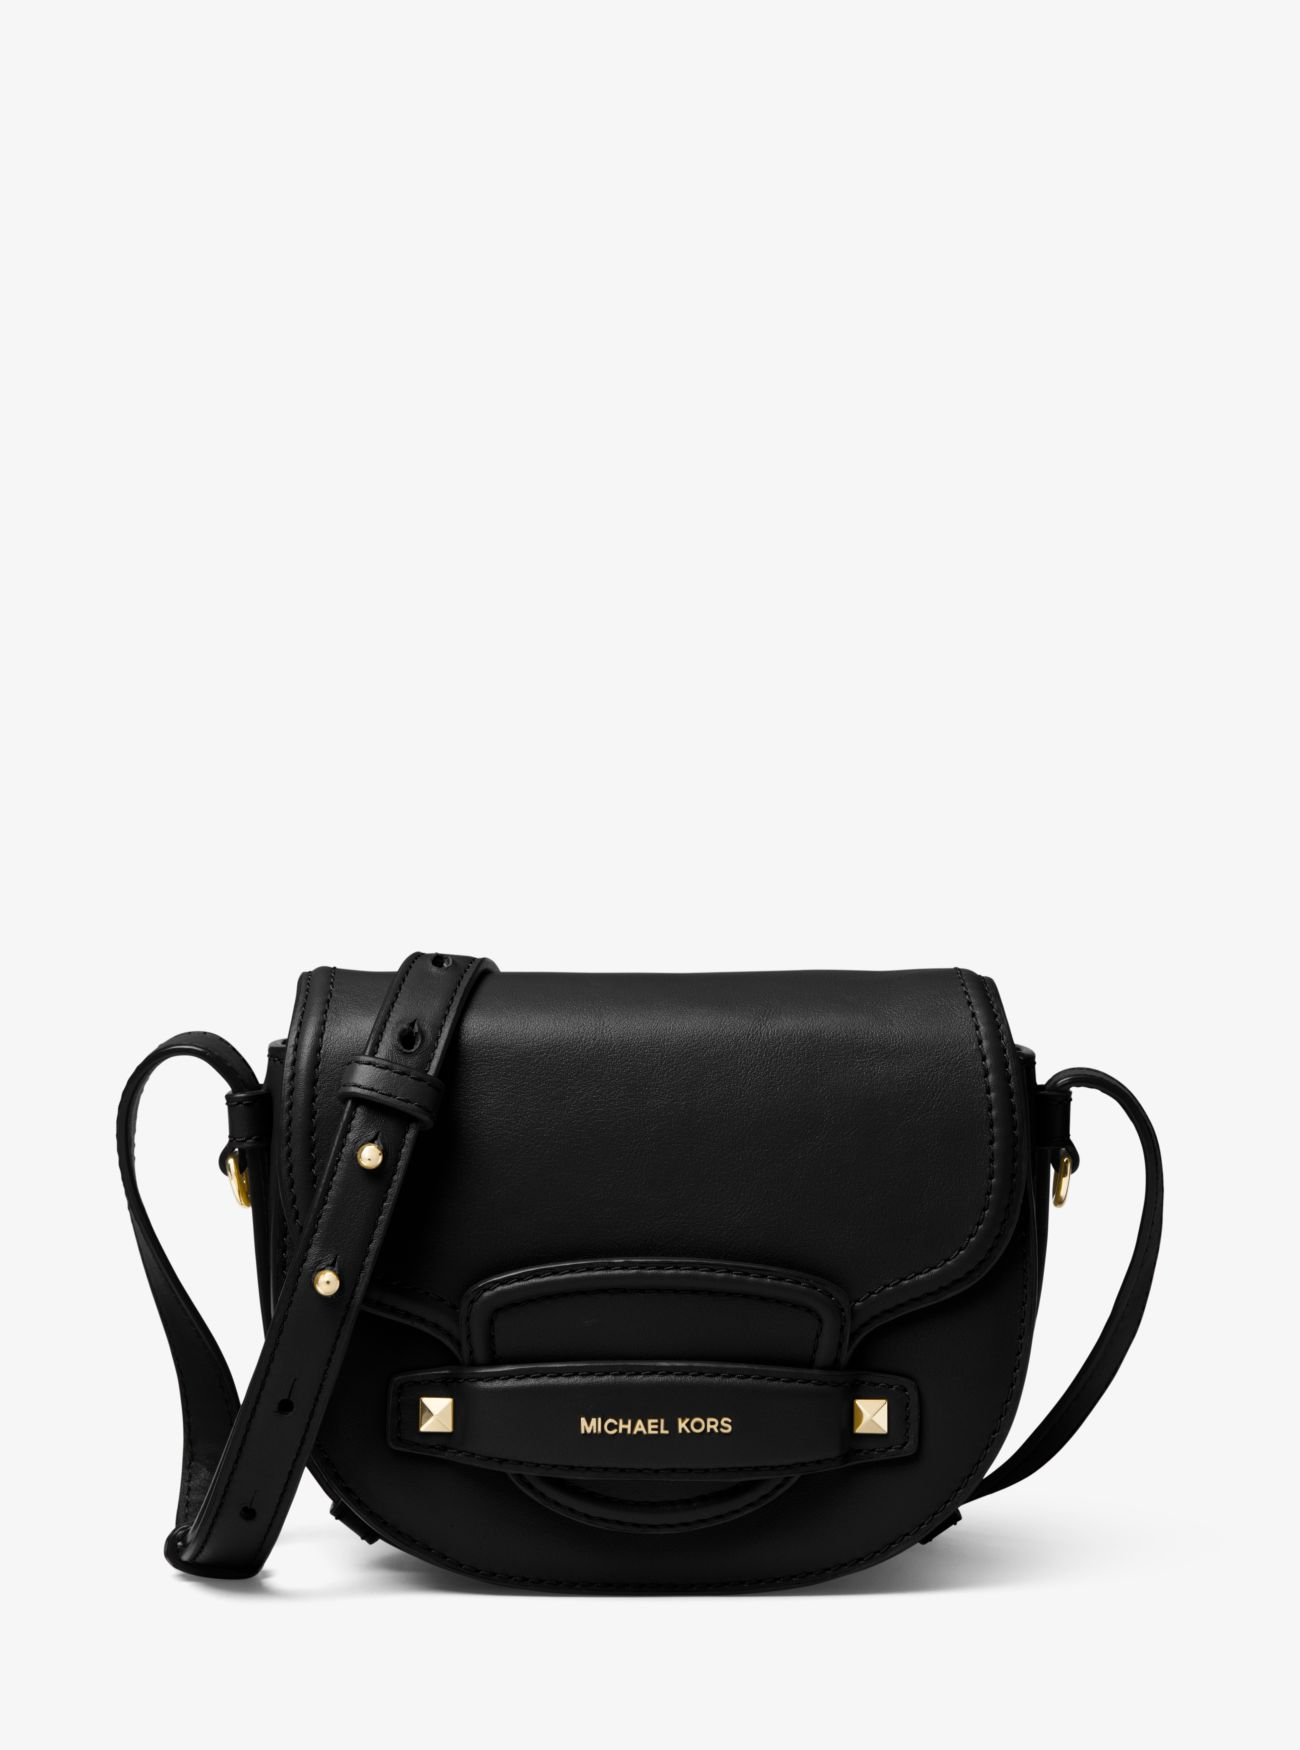 ca97a8e9e82 Cary Small Leather Saddle Bag   Michael Kors